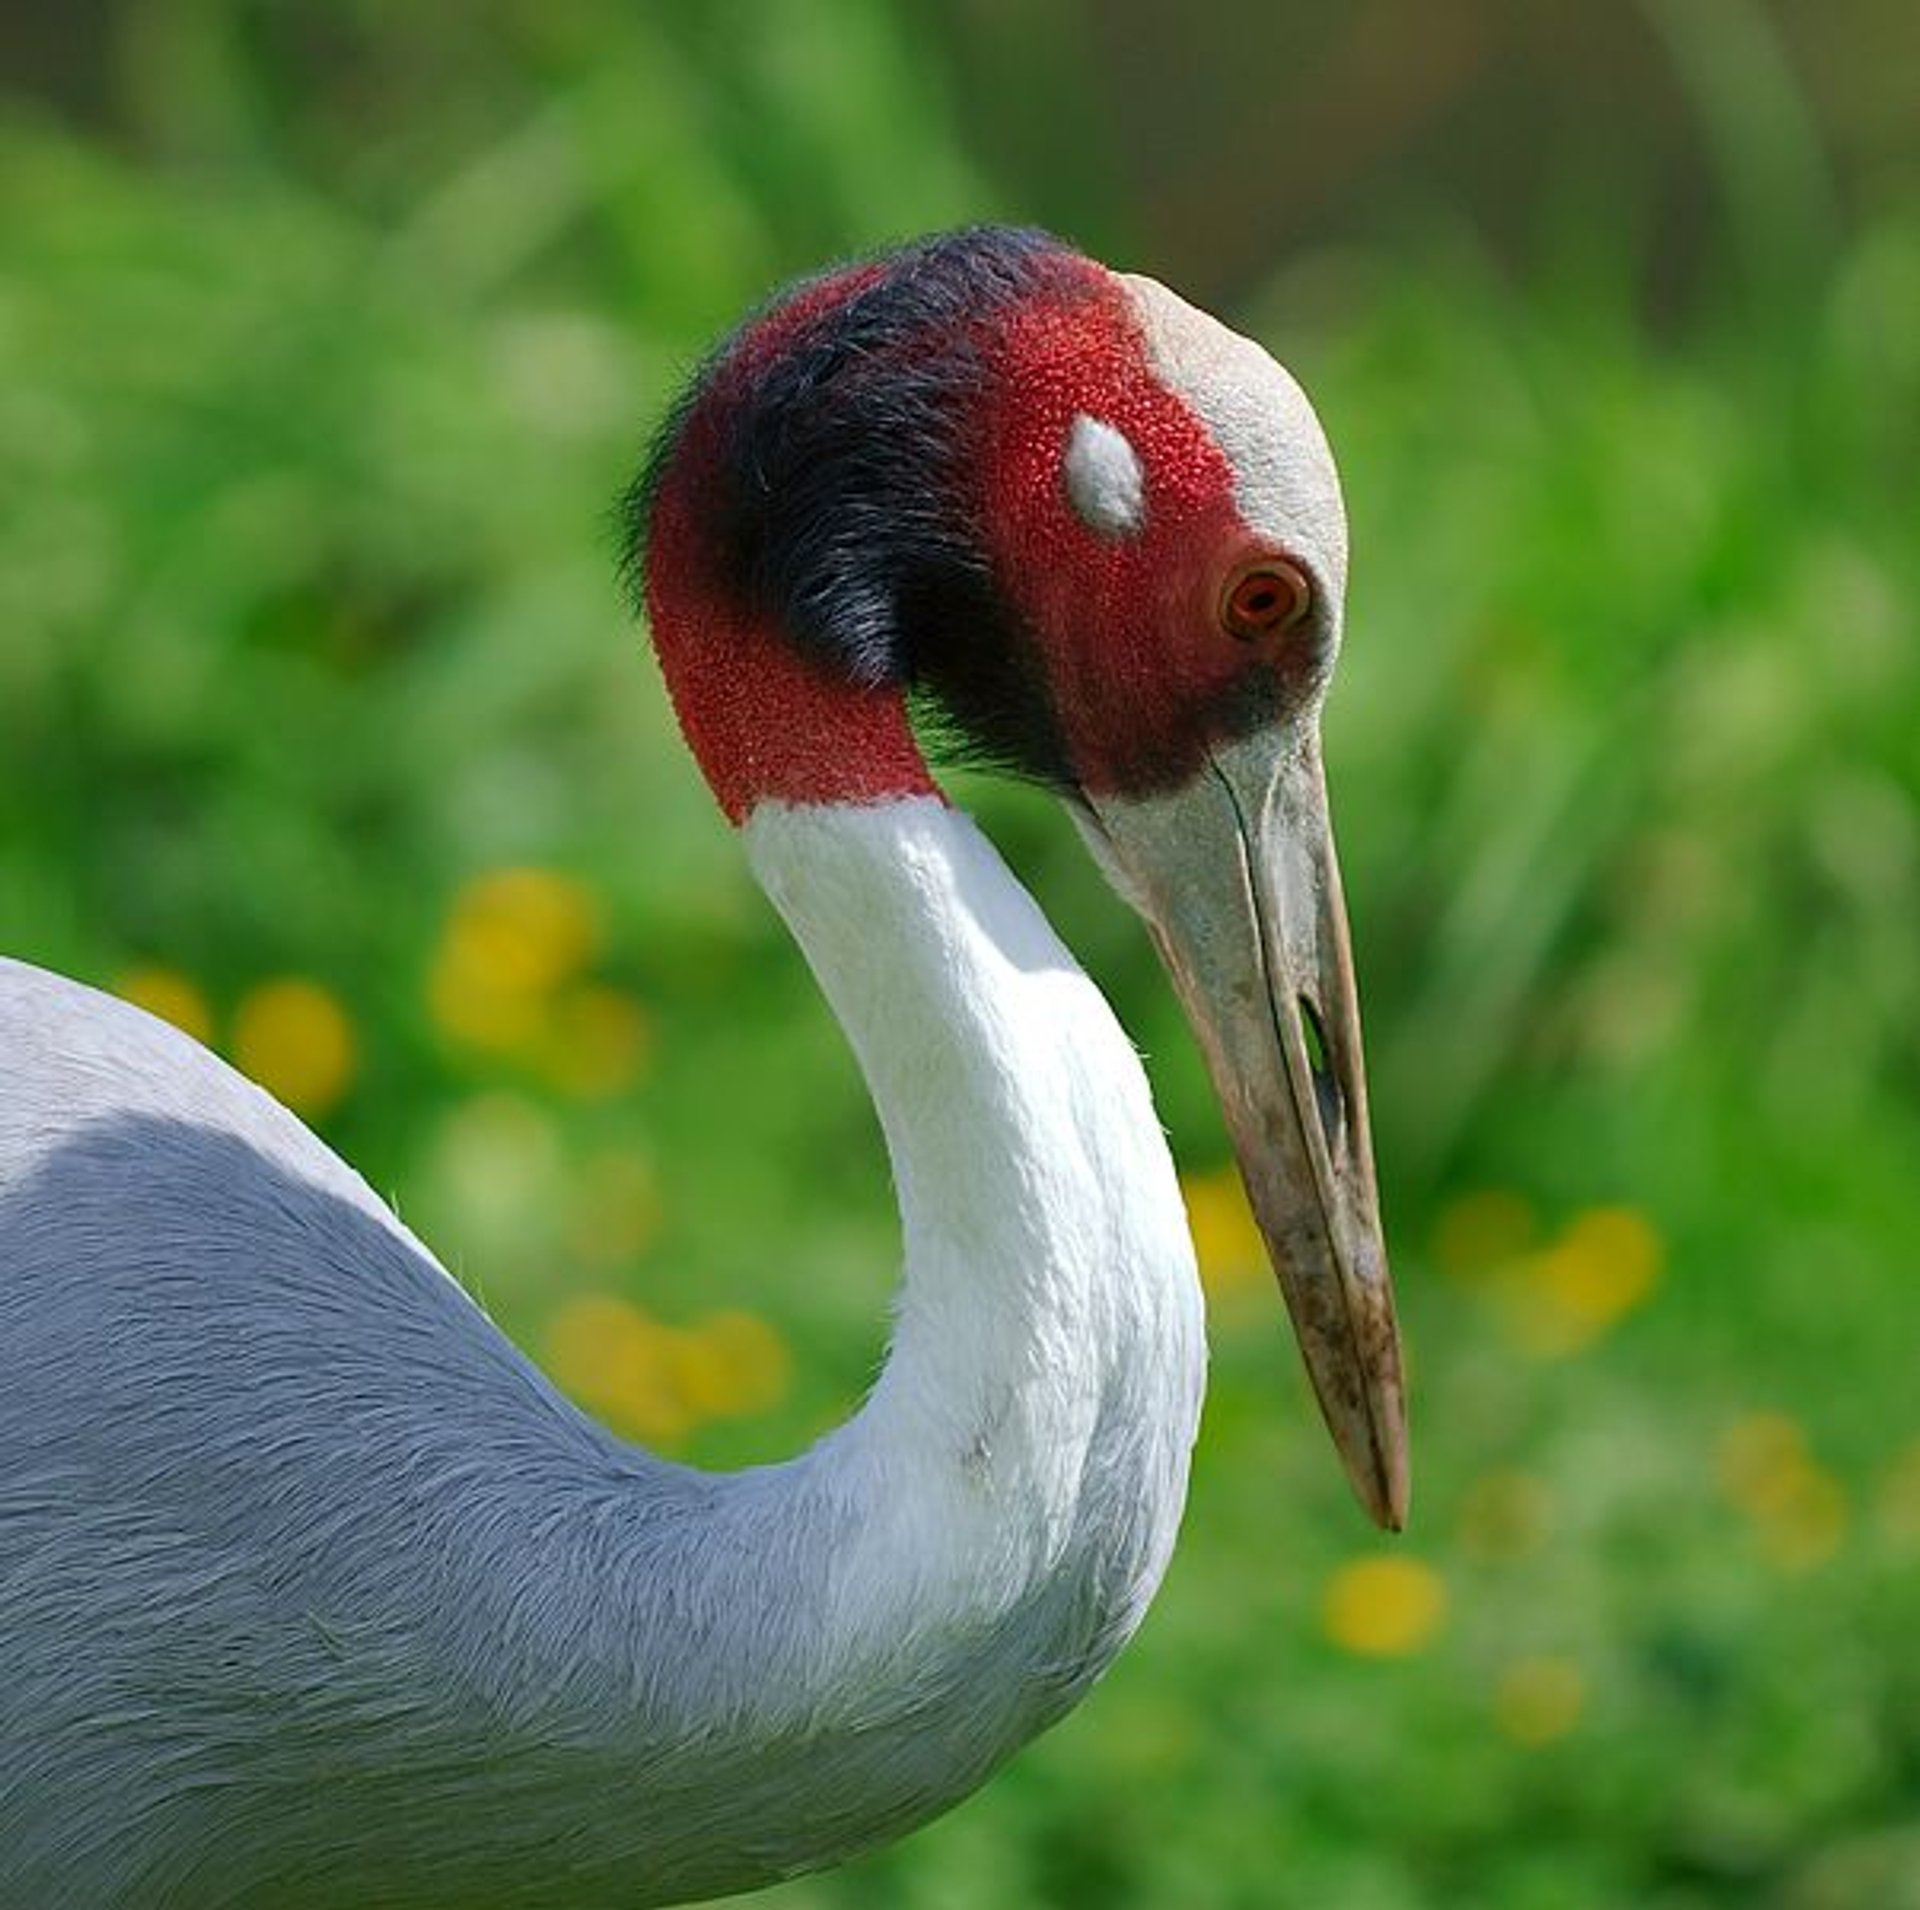 Red-Headed Cranes Watching in Vietnam 2020 - Best Time